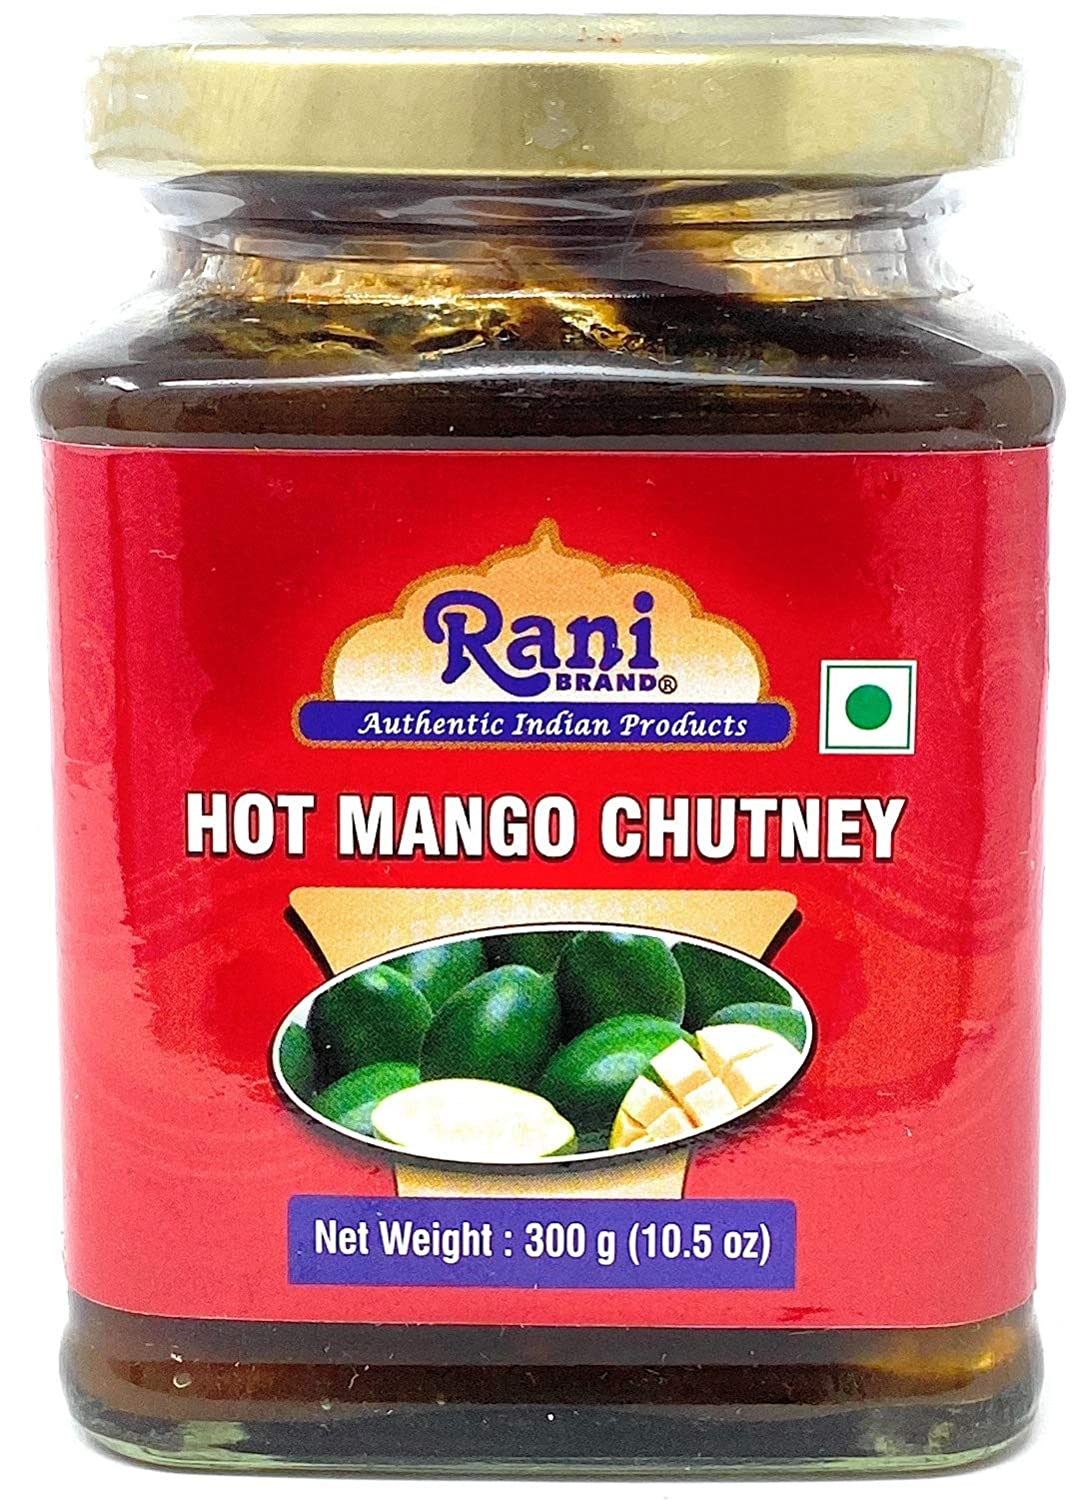 Rani Hot Mango Chutney (Spicy Indian Preserve) 10.5oz (300g) Glass Jar, Ready to eat, Vegan ~ Gluten Free Ingredients, All Natural, NON-GMO